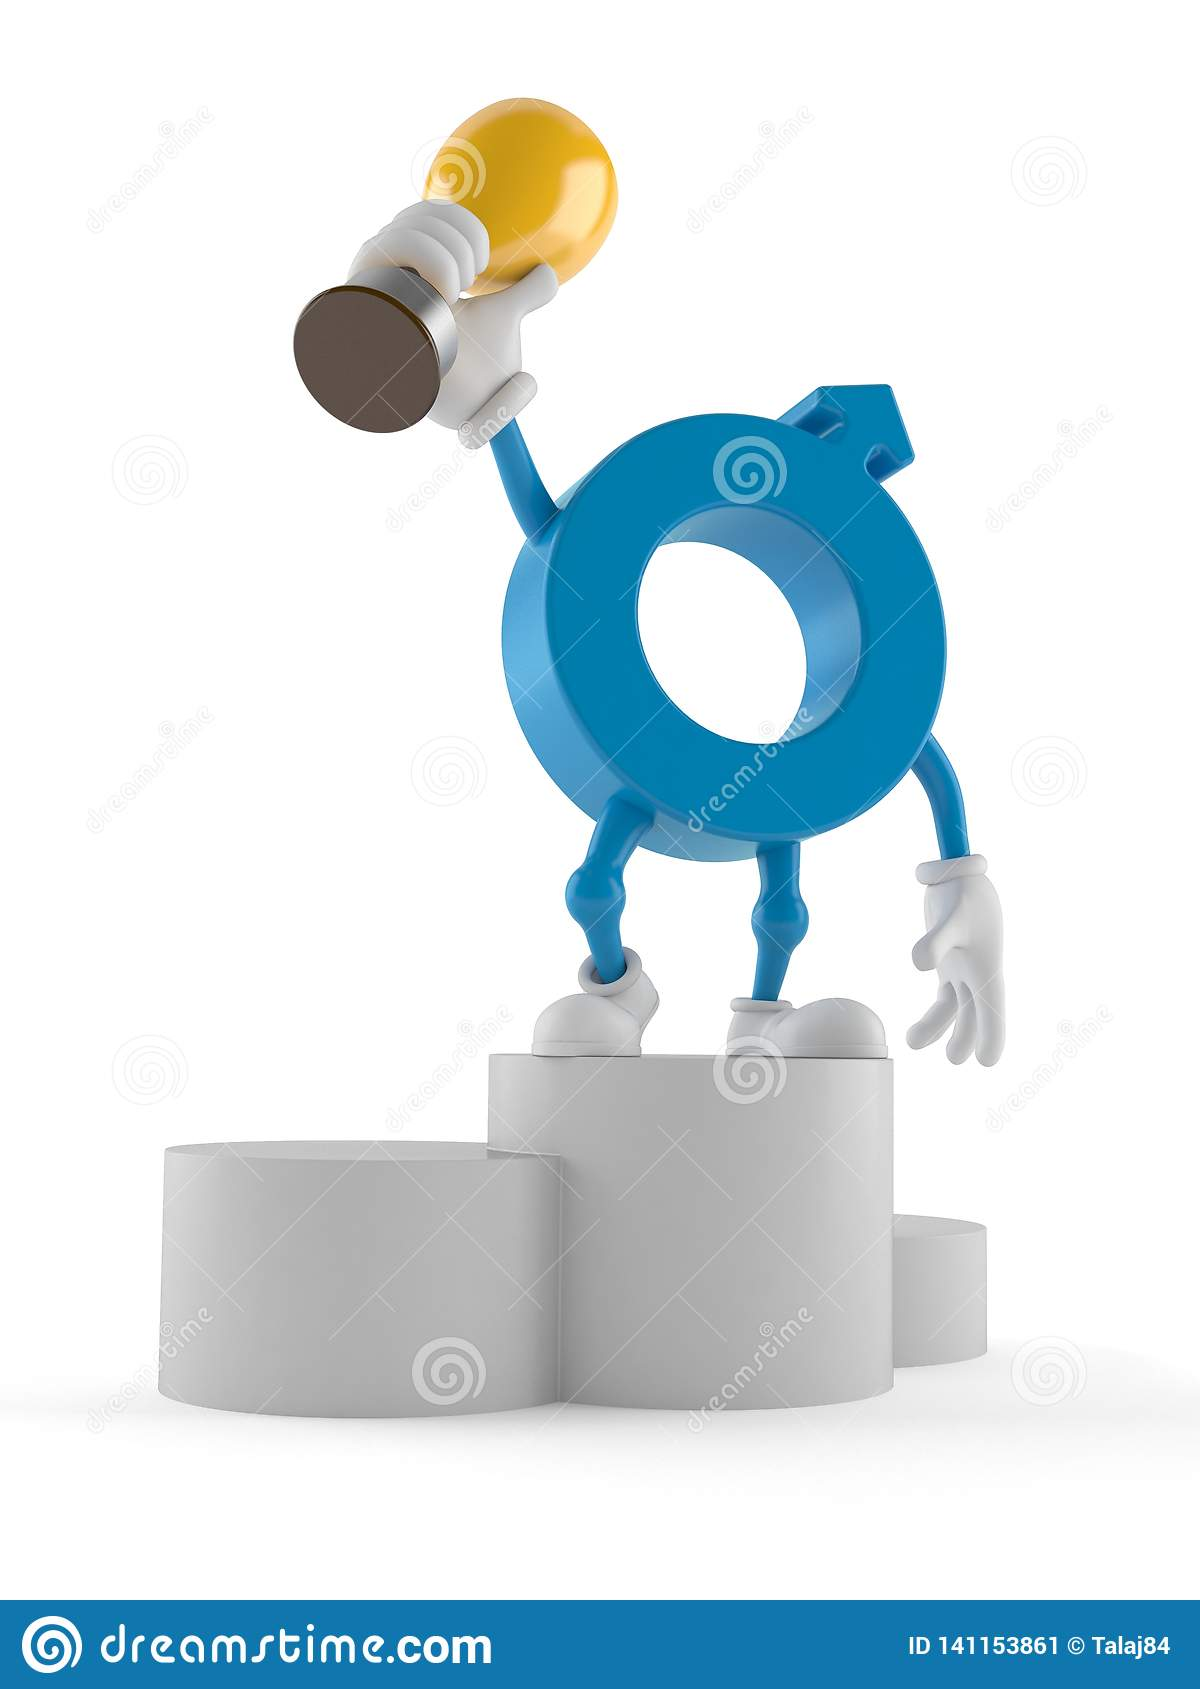 Male gender symbol character on podium holding trophy